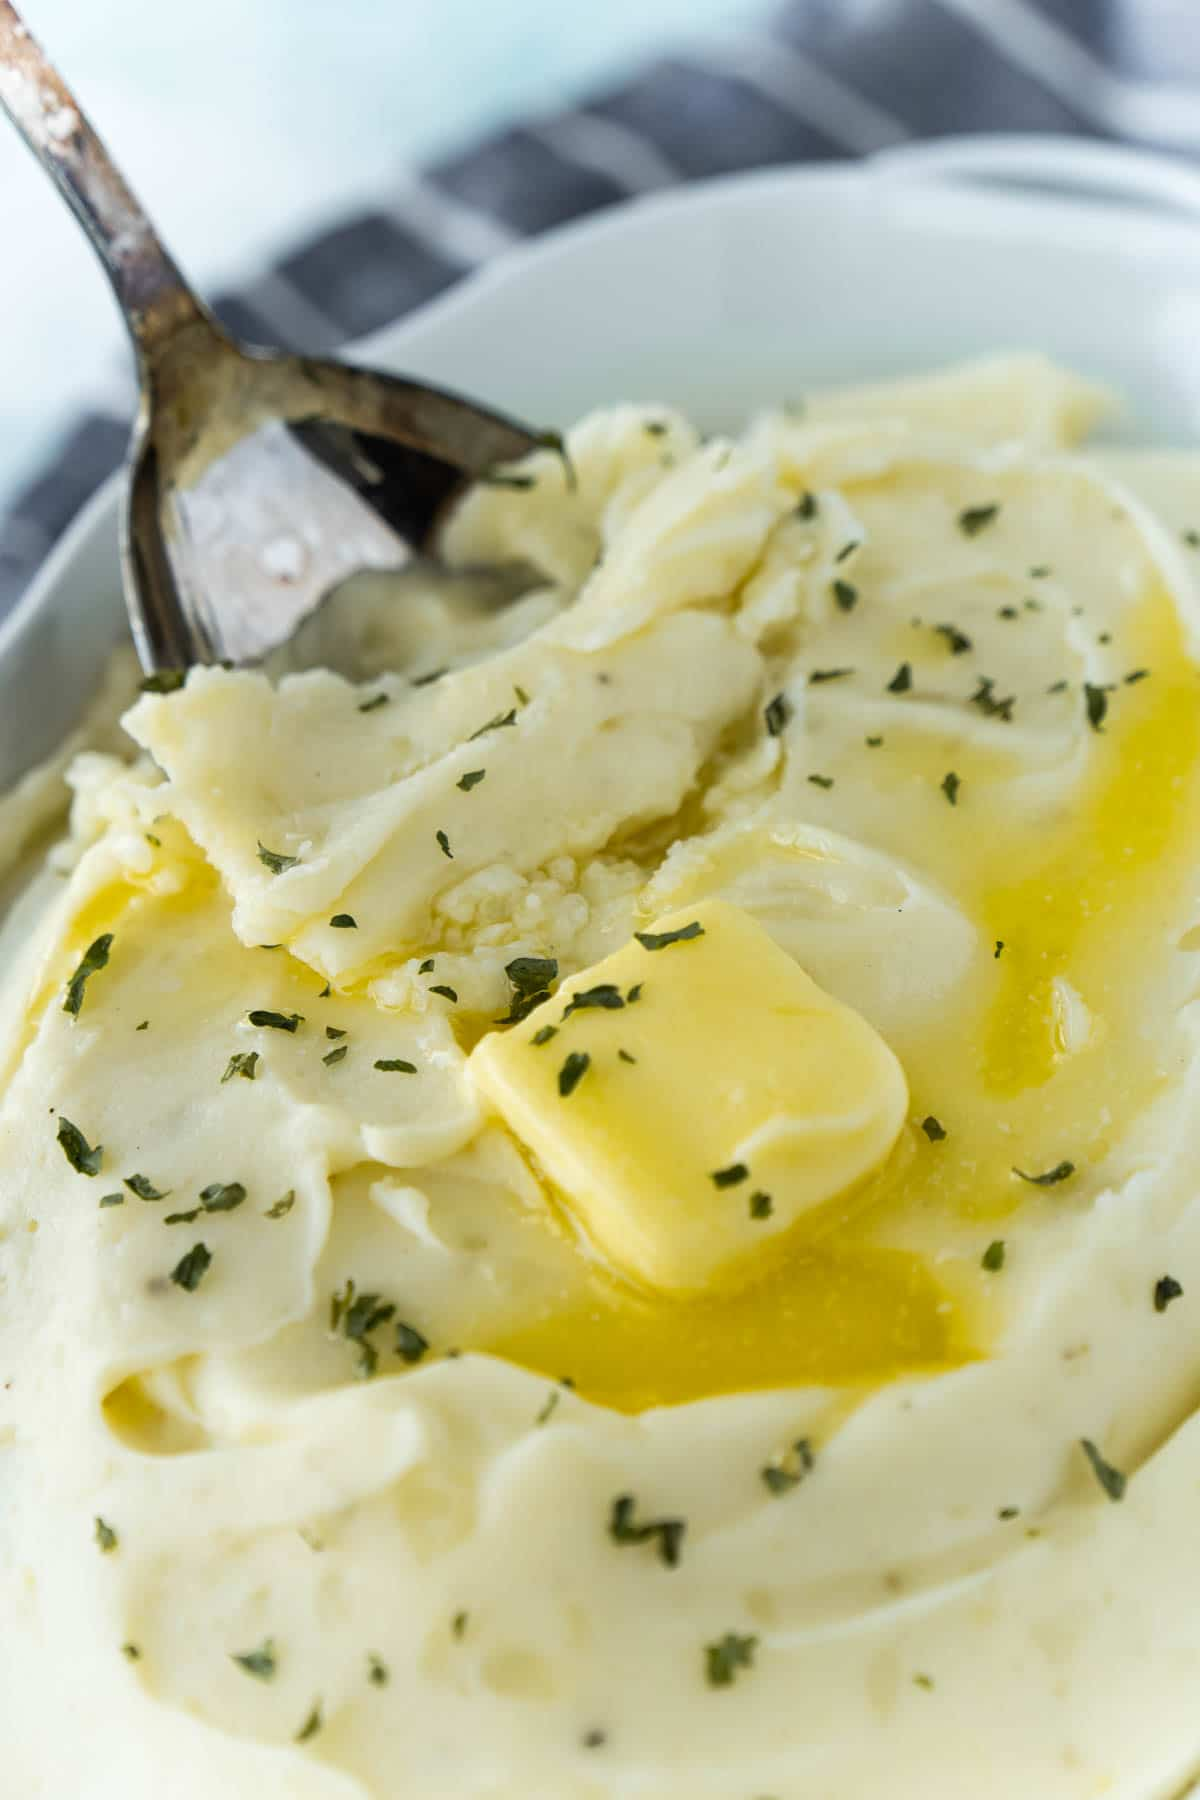 metal spoon in a bowl of mashed potatoes with butter on top